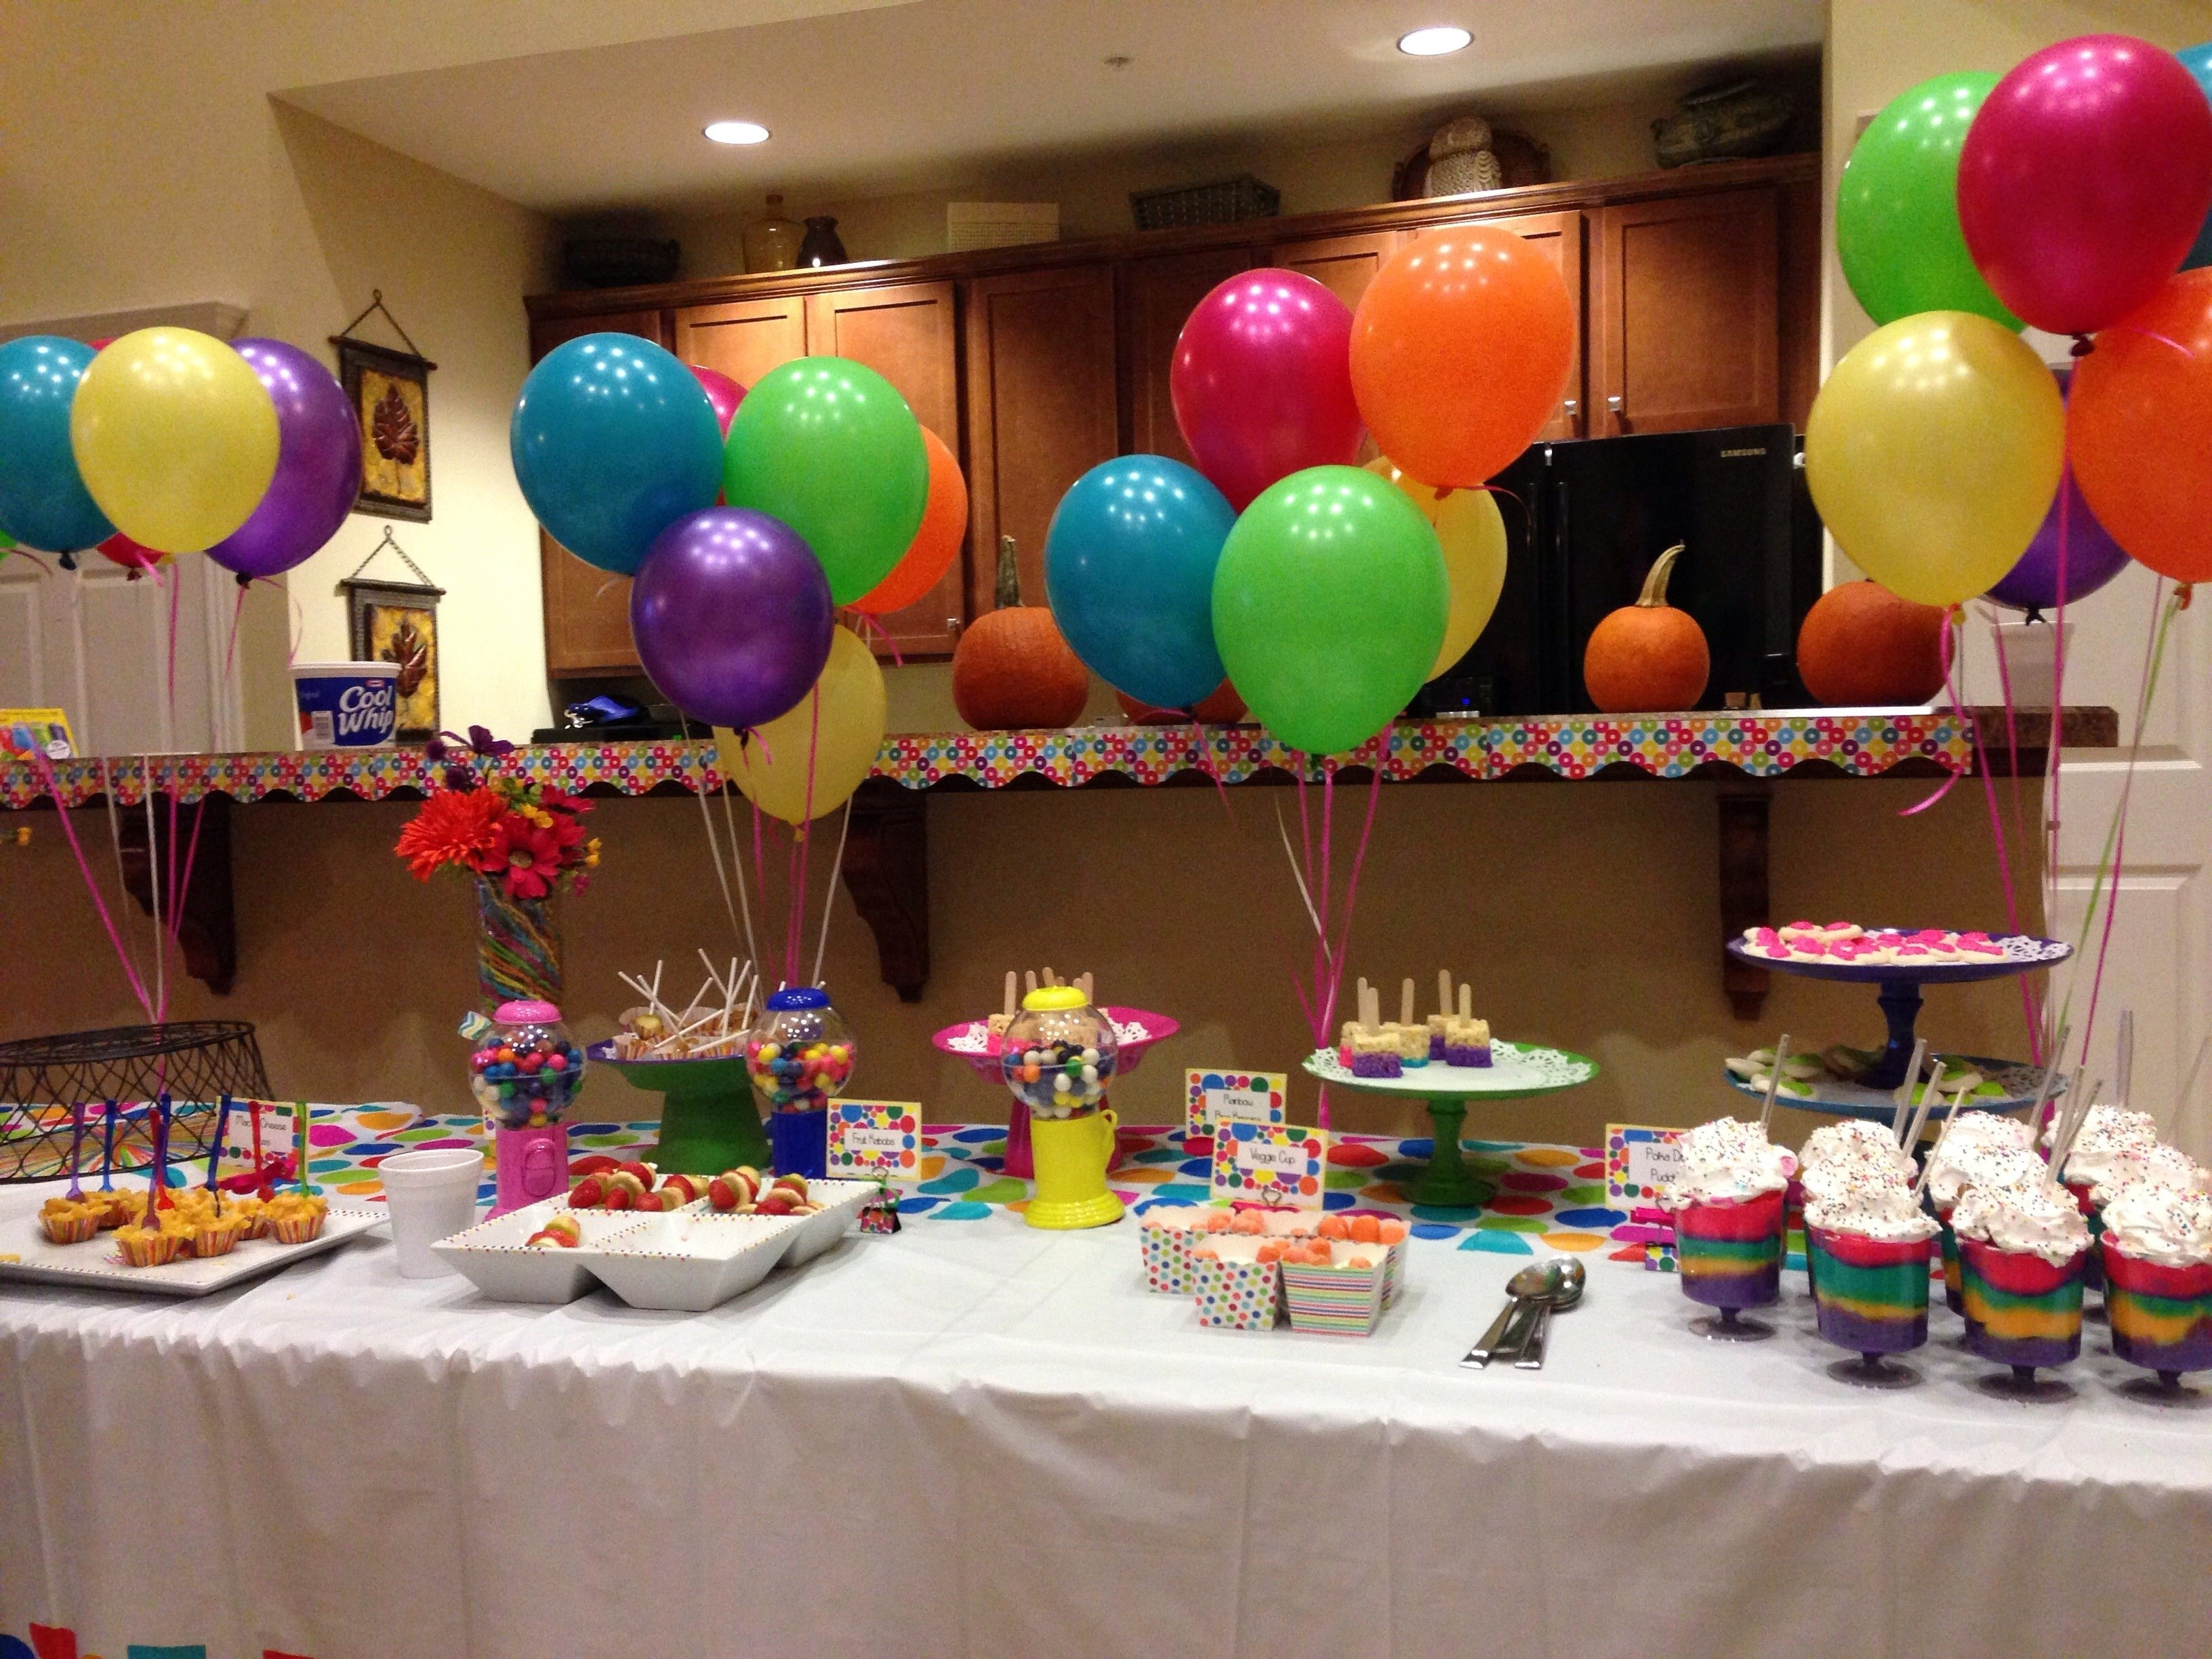 10 Most Recommended 2 Year Old Bday Party Ideas 4 year old birthday party modern portrait around gallery 2 year old 2020